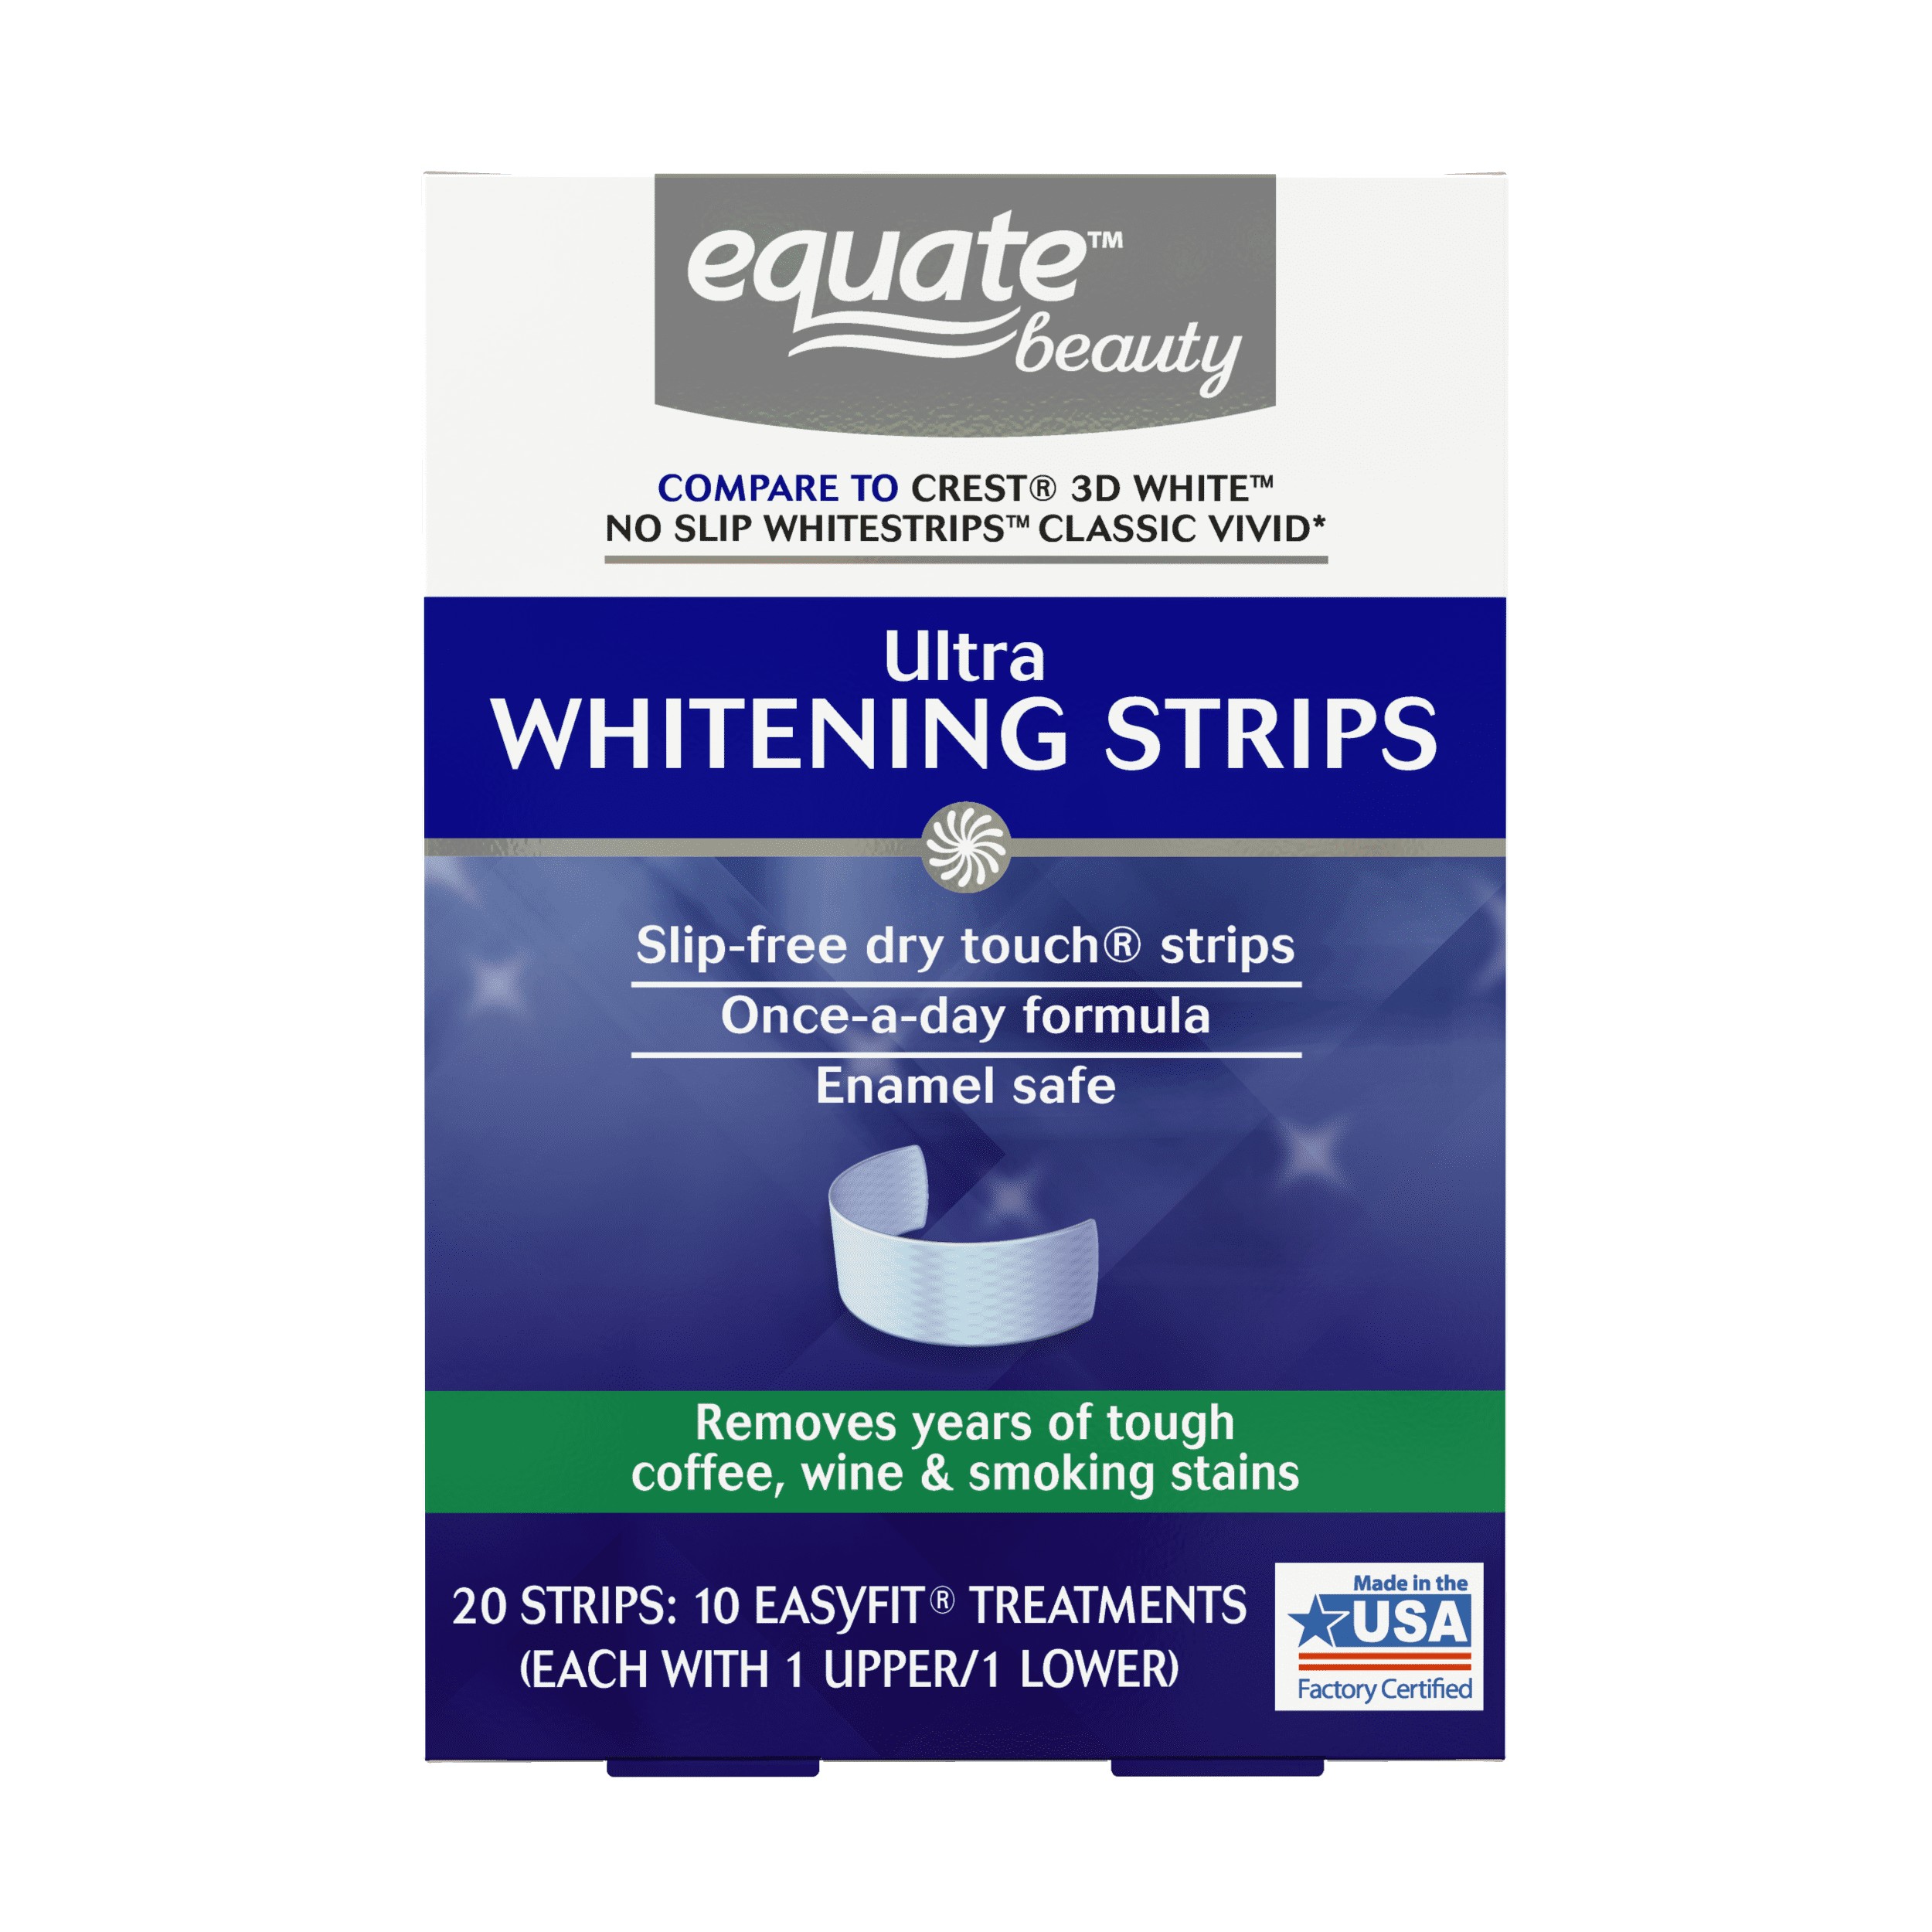 Equate Beauty Ultra Teeth Whitening Strips 10 Day Treatment Walmart Com Walmart Com